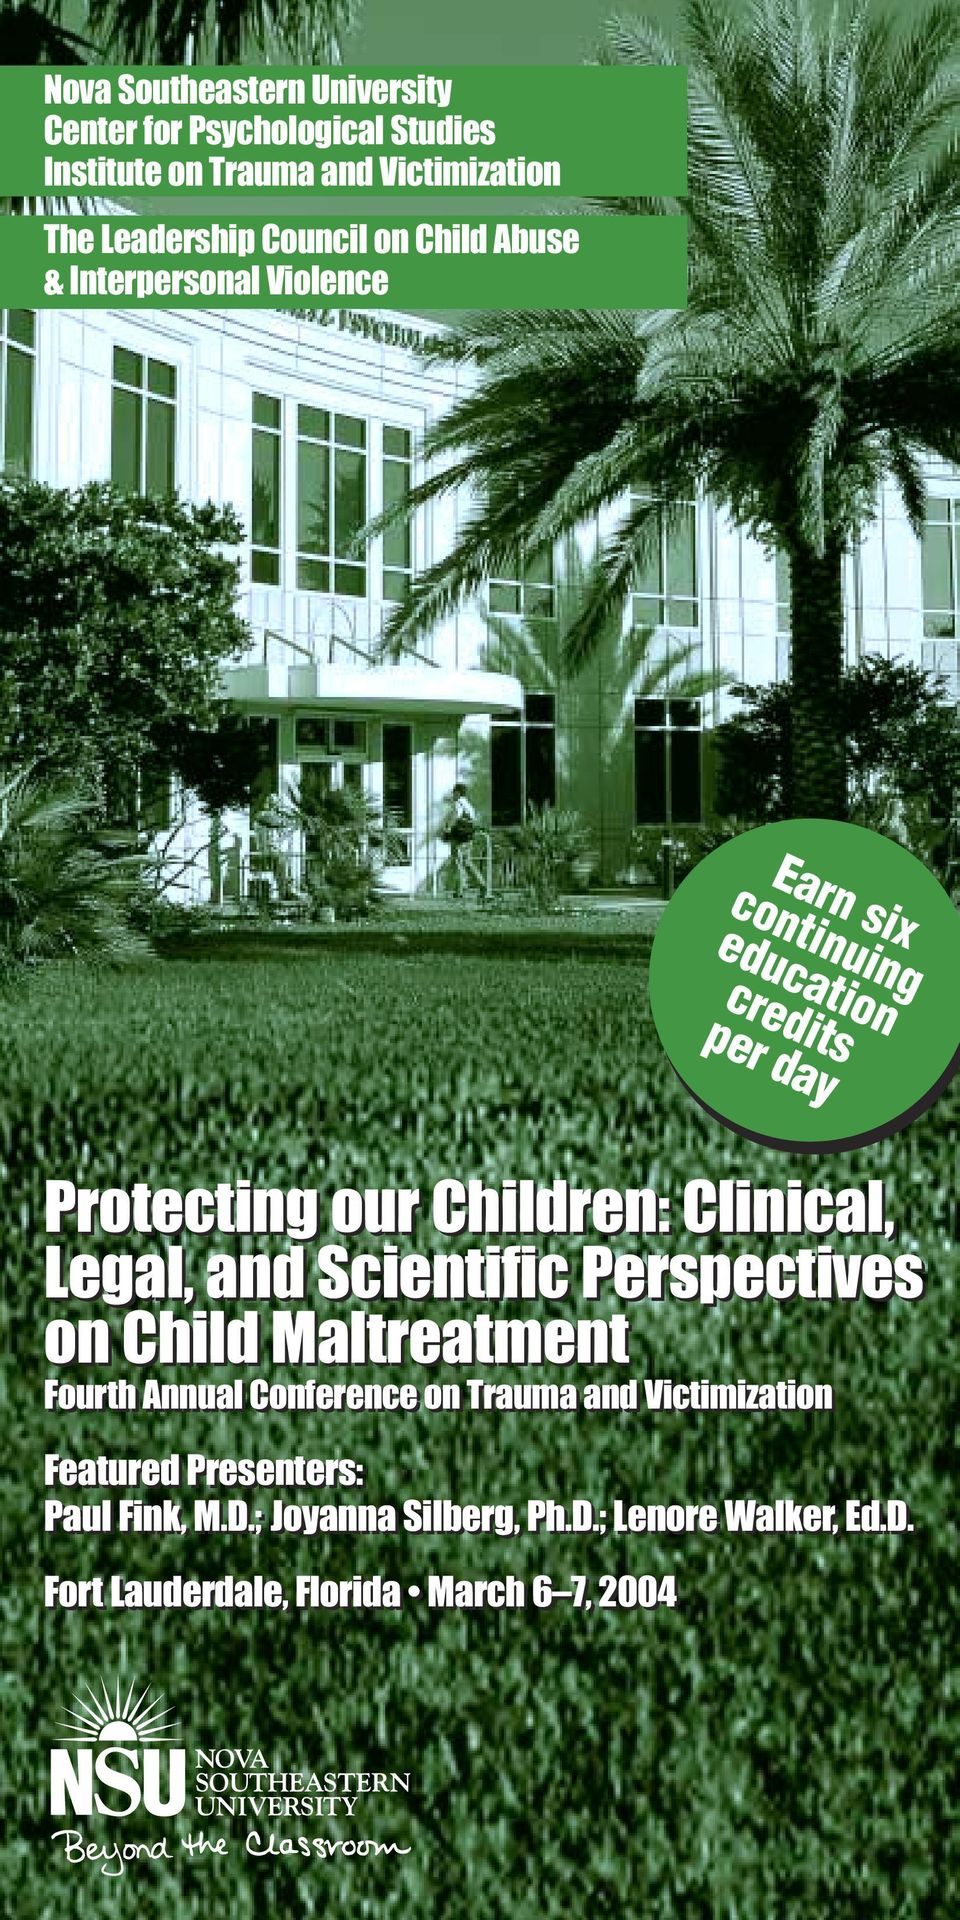 Clinical, Legal, and Scientific Perspectives on Child Maltreatment Fourth Annual Conference on Trauma and Victimization